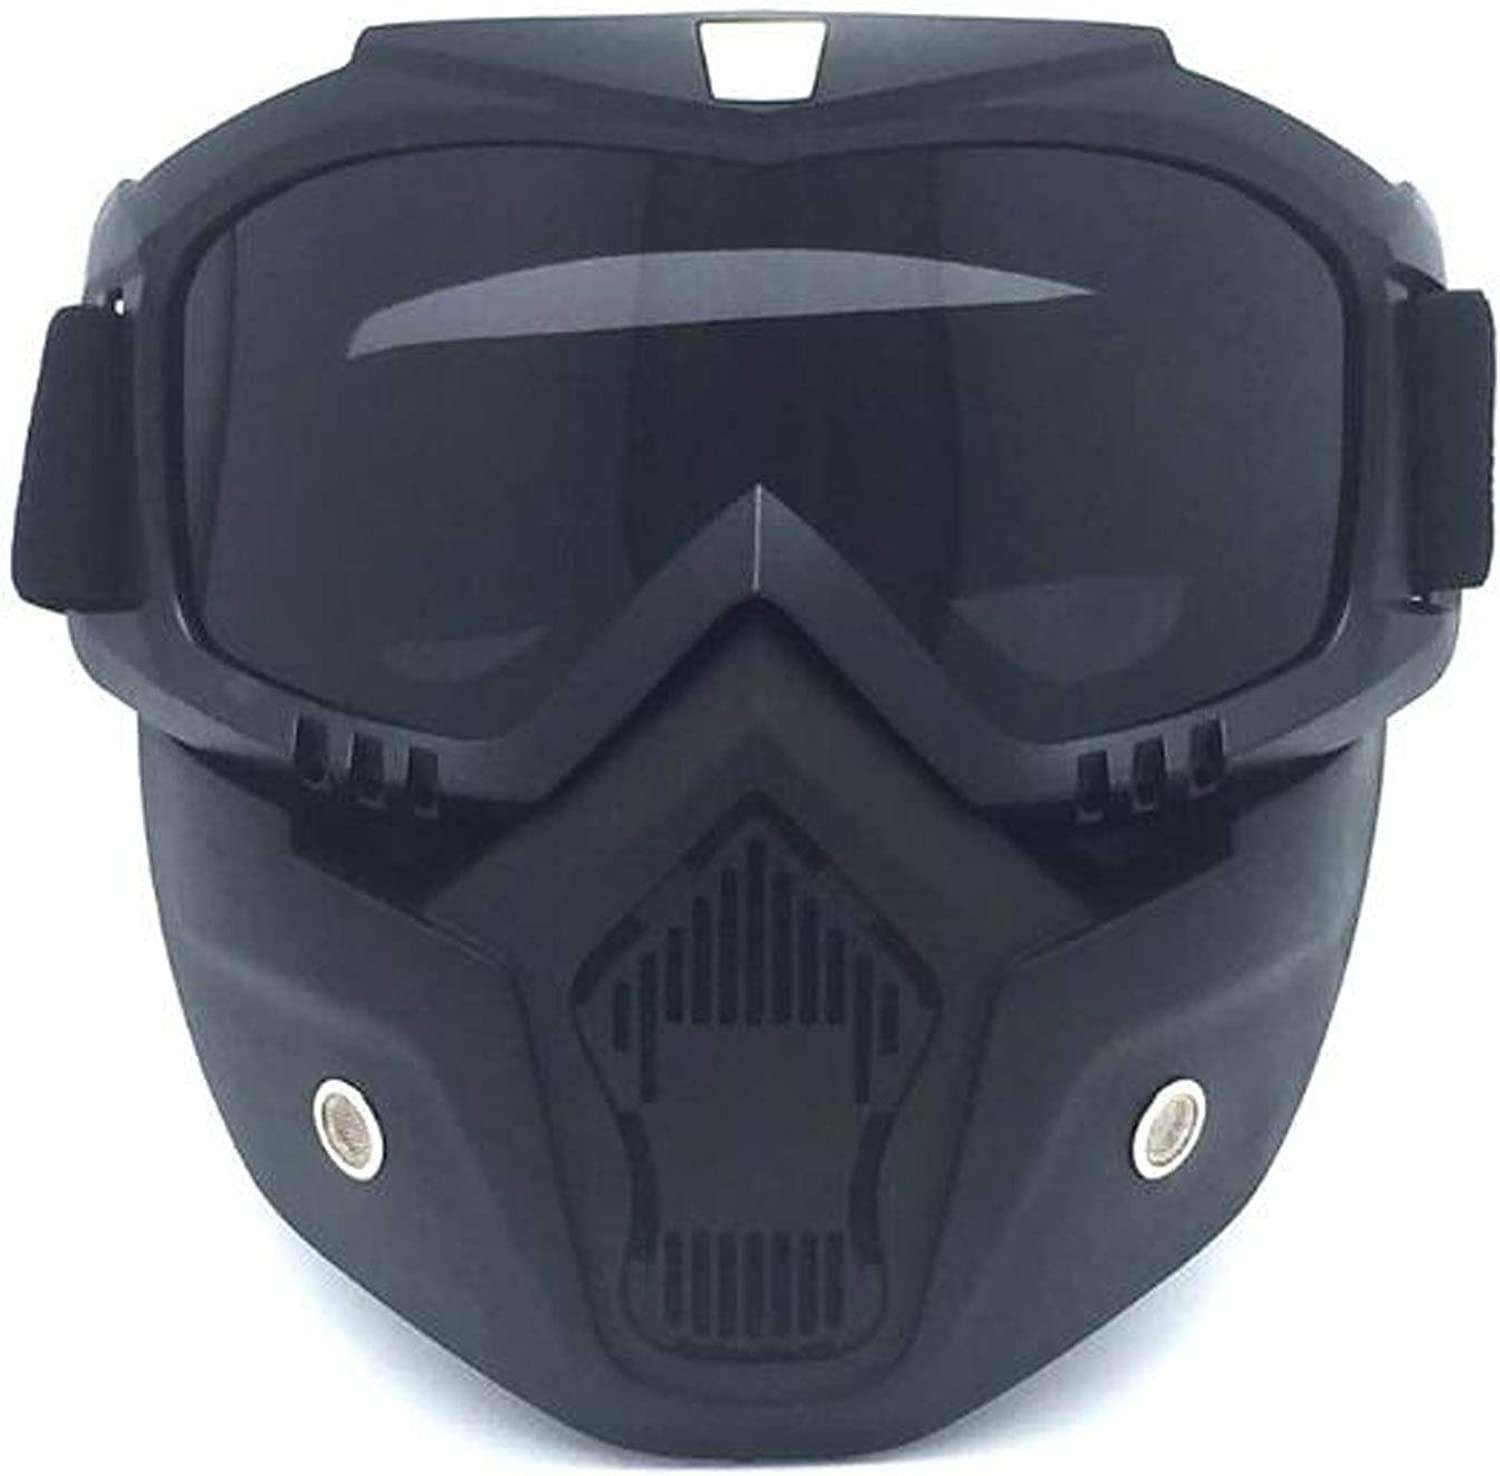 Harley Motorcycle Removable Mask Riding Mask with Goggles Helmet Sunglasses